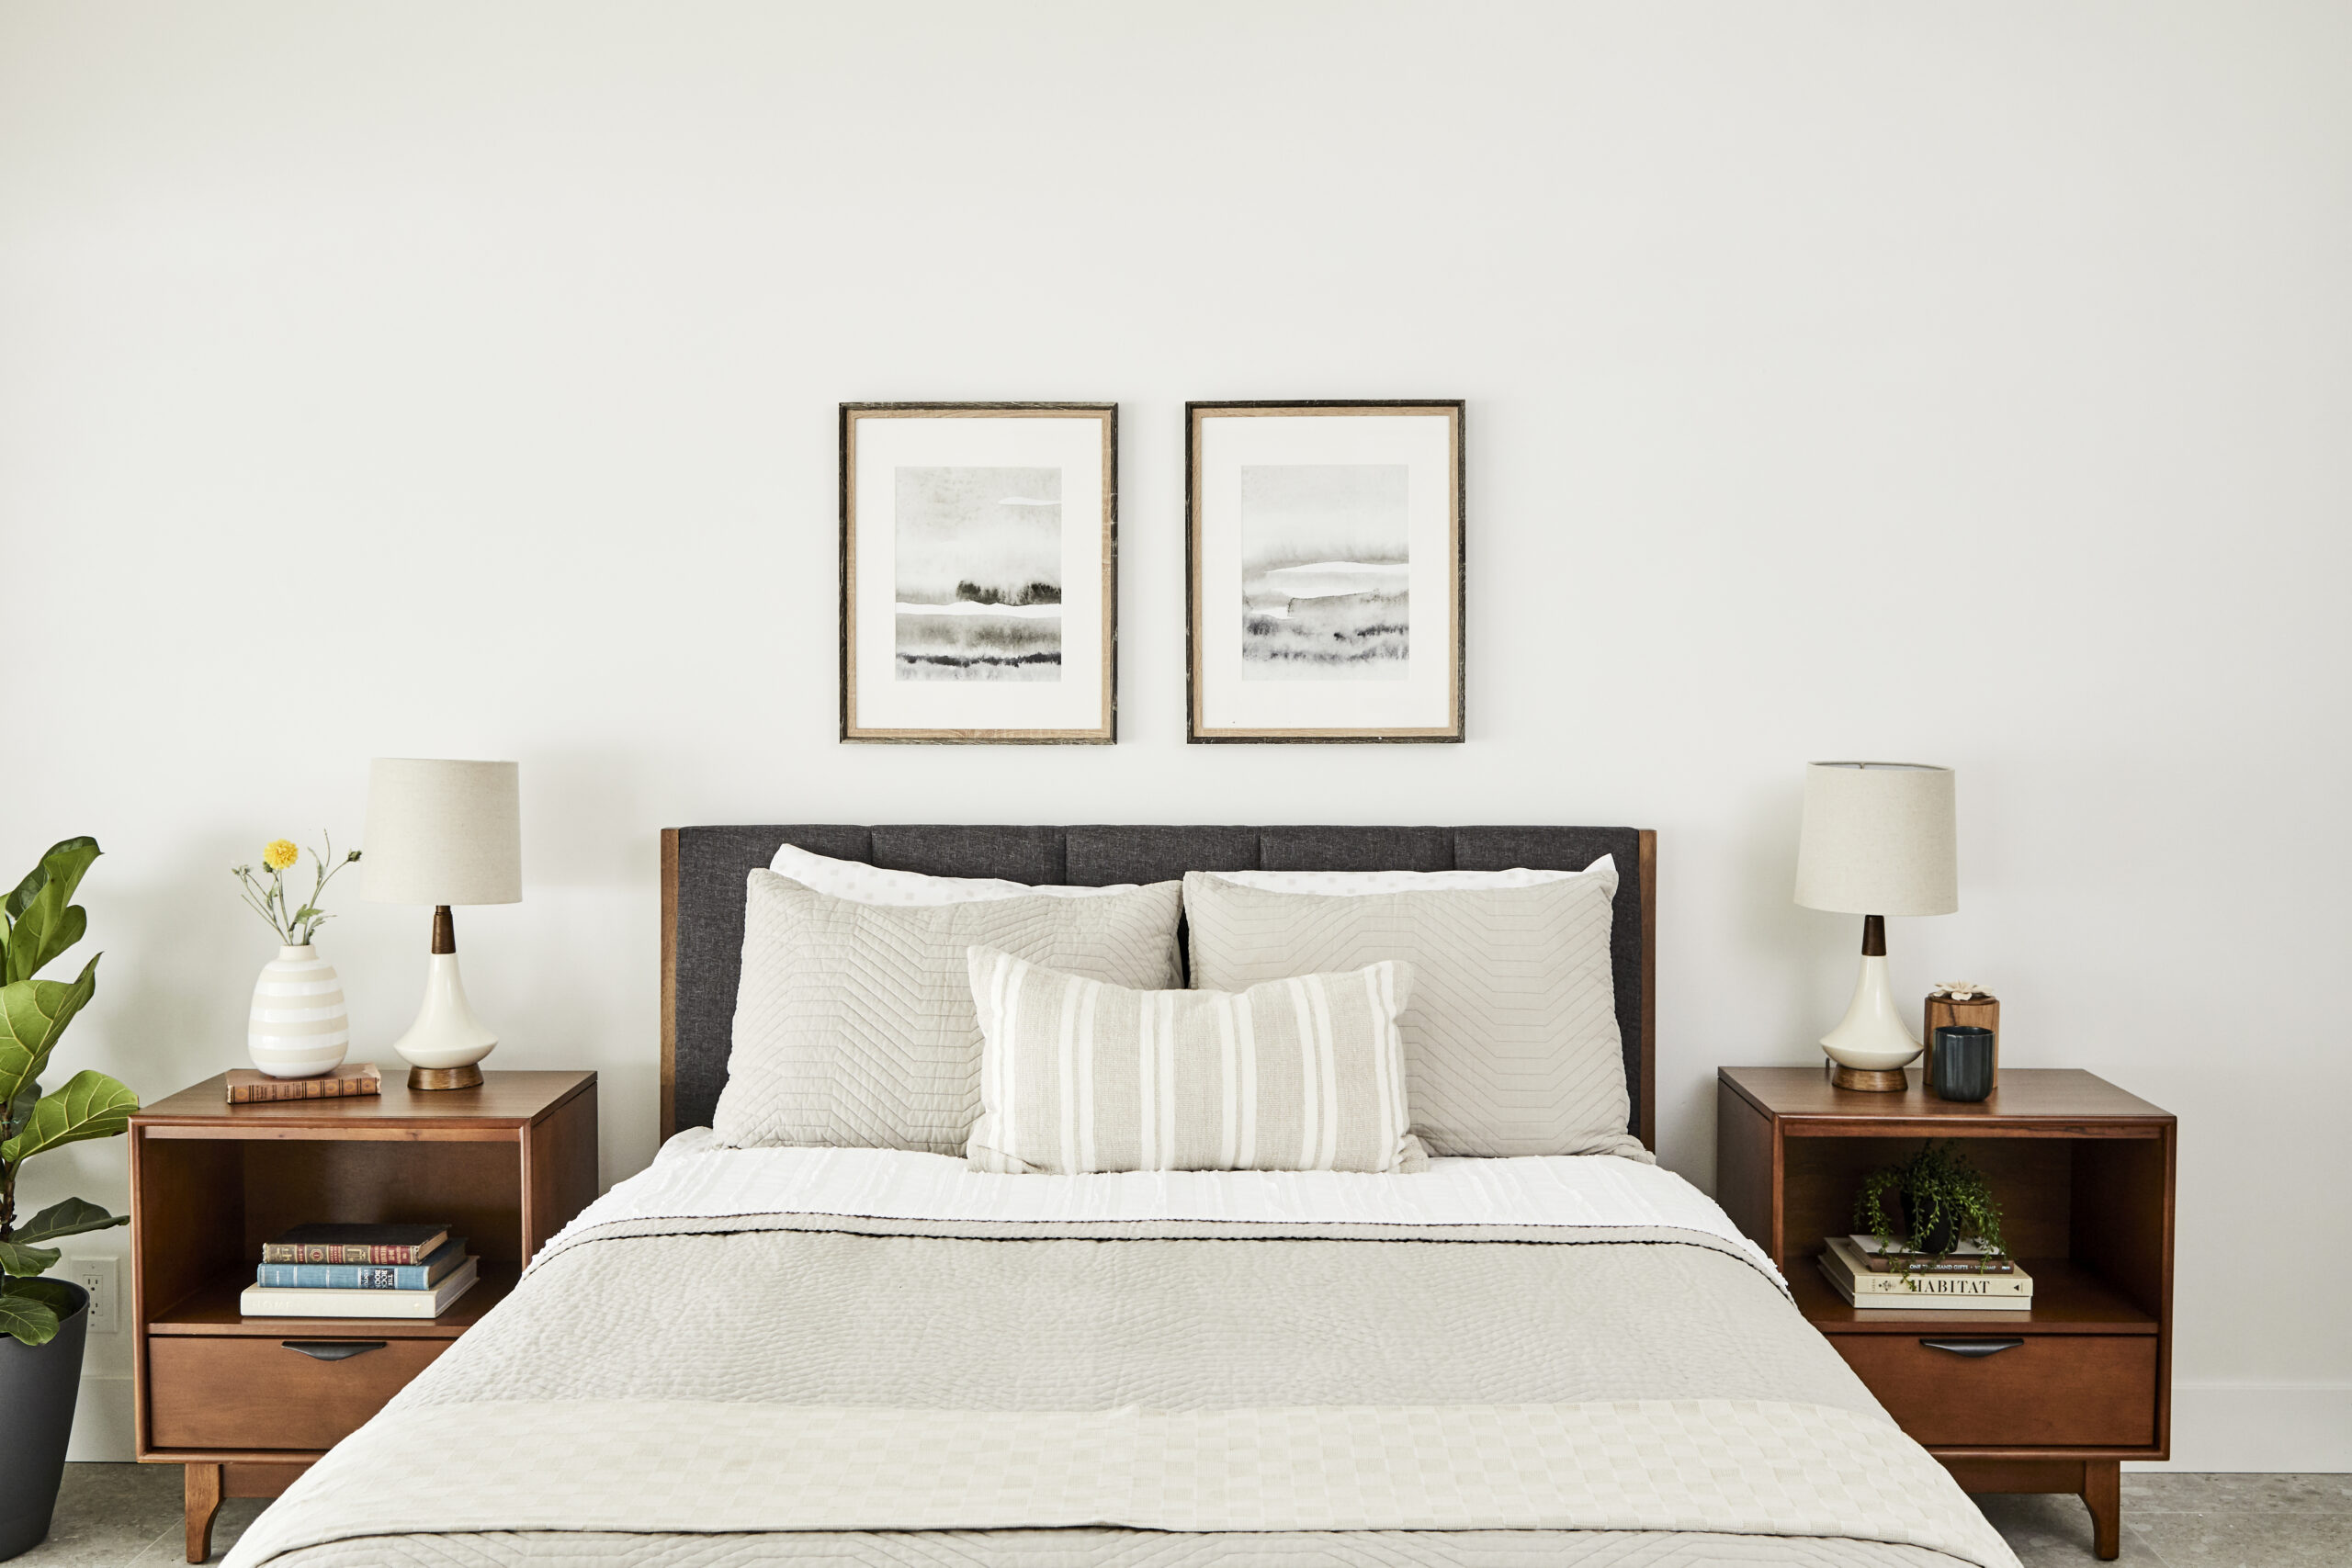 Neutral colored bedroom. Socalhomebuyers.com.